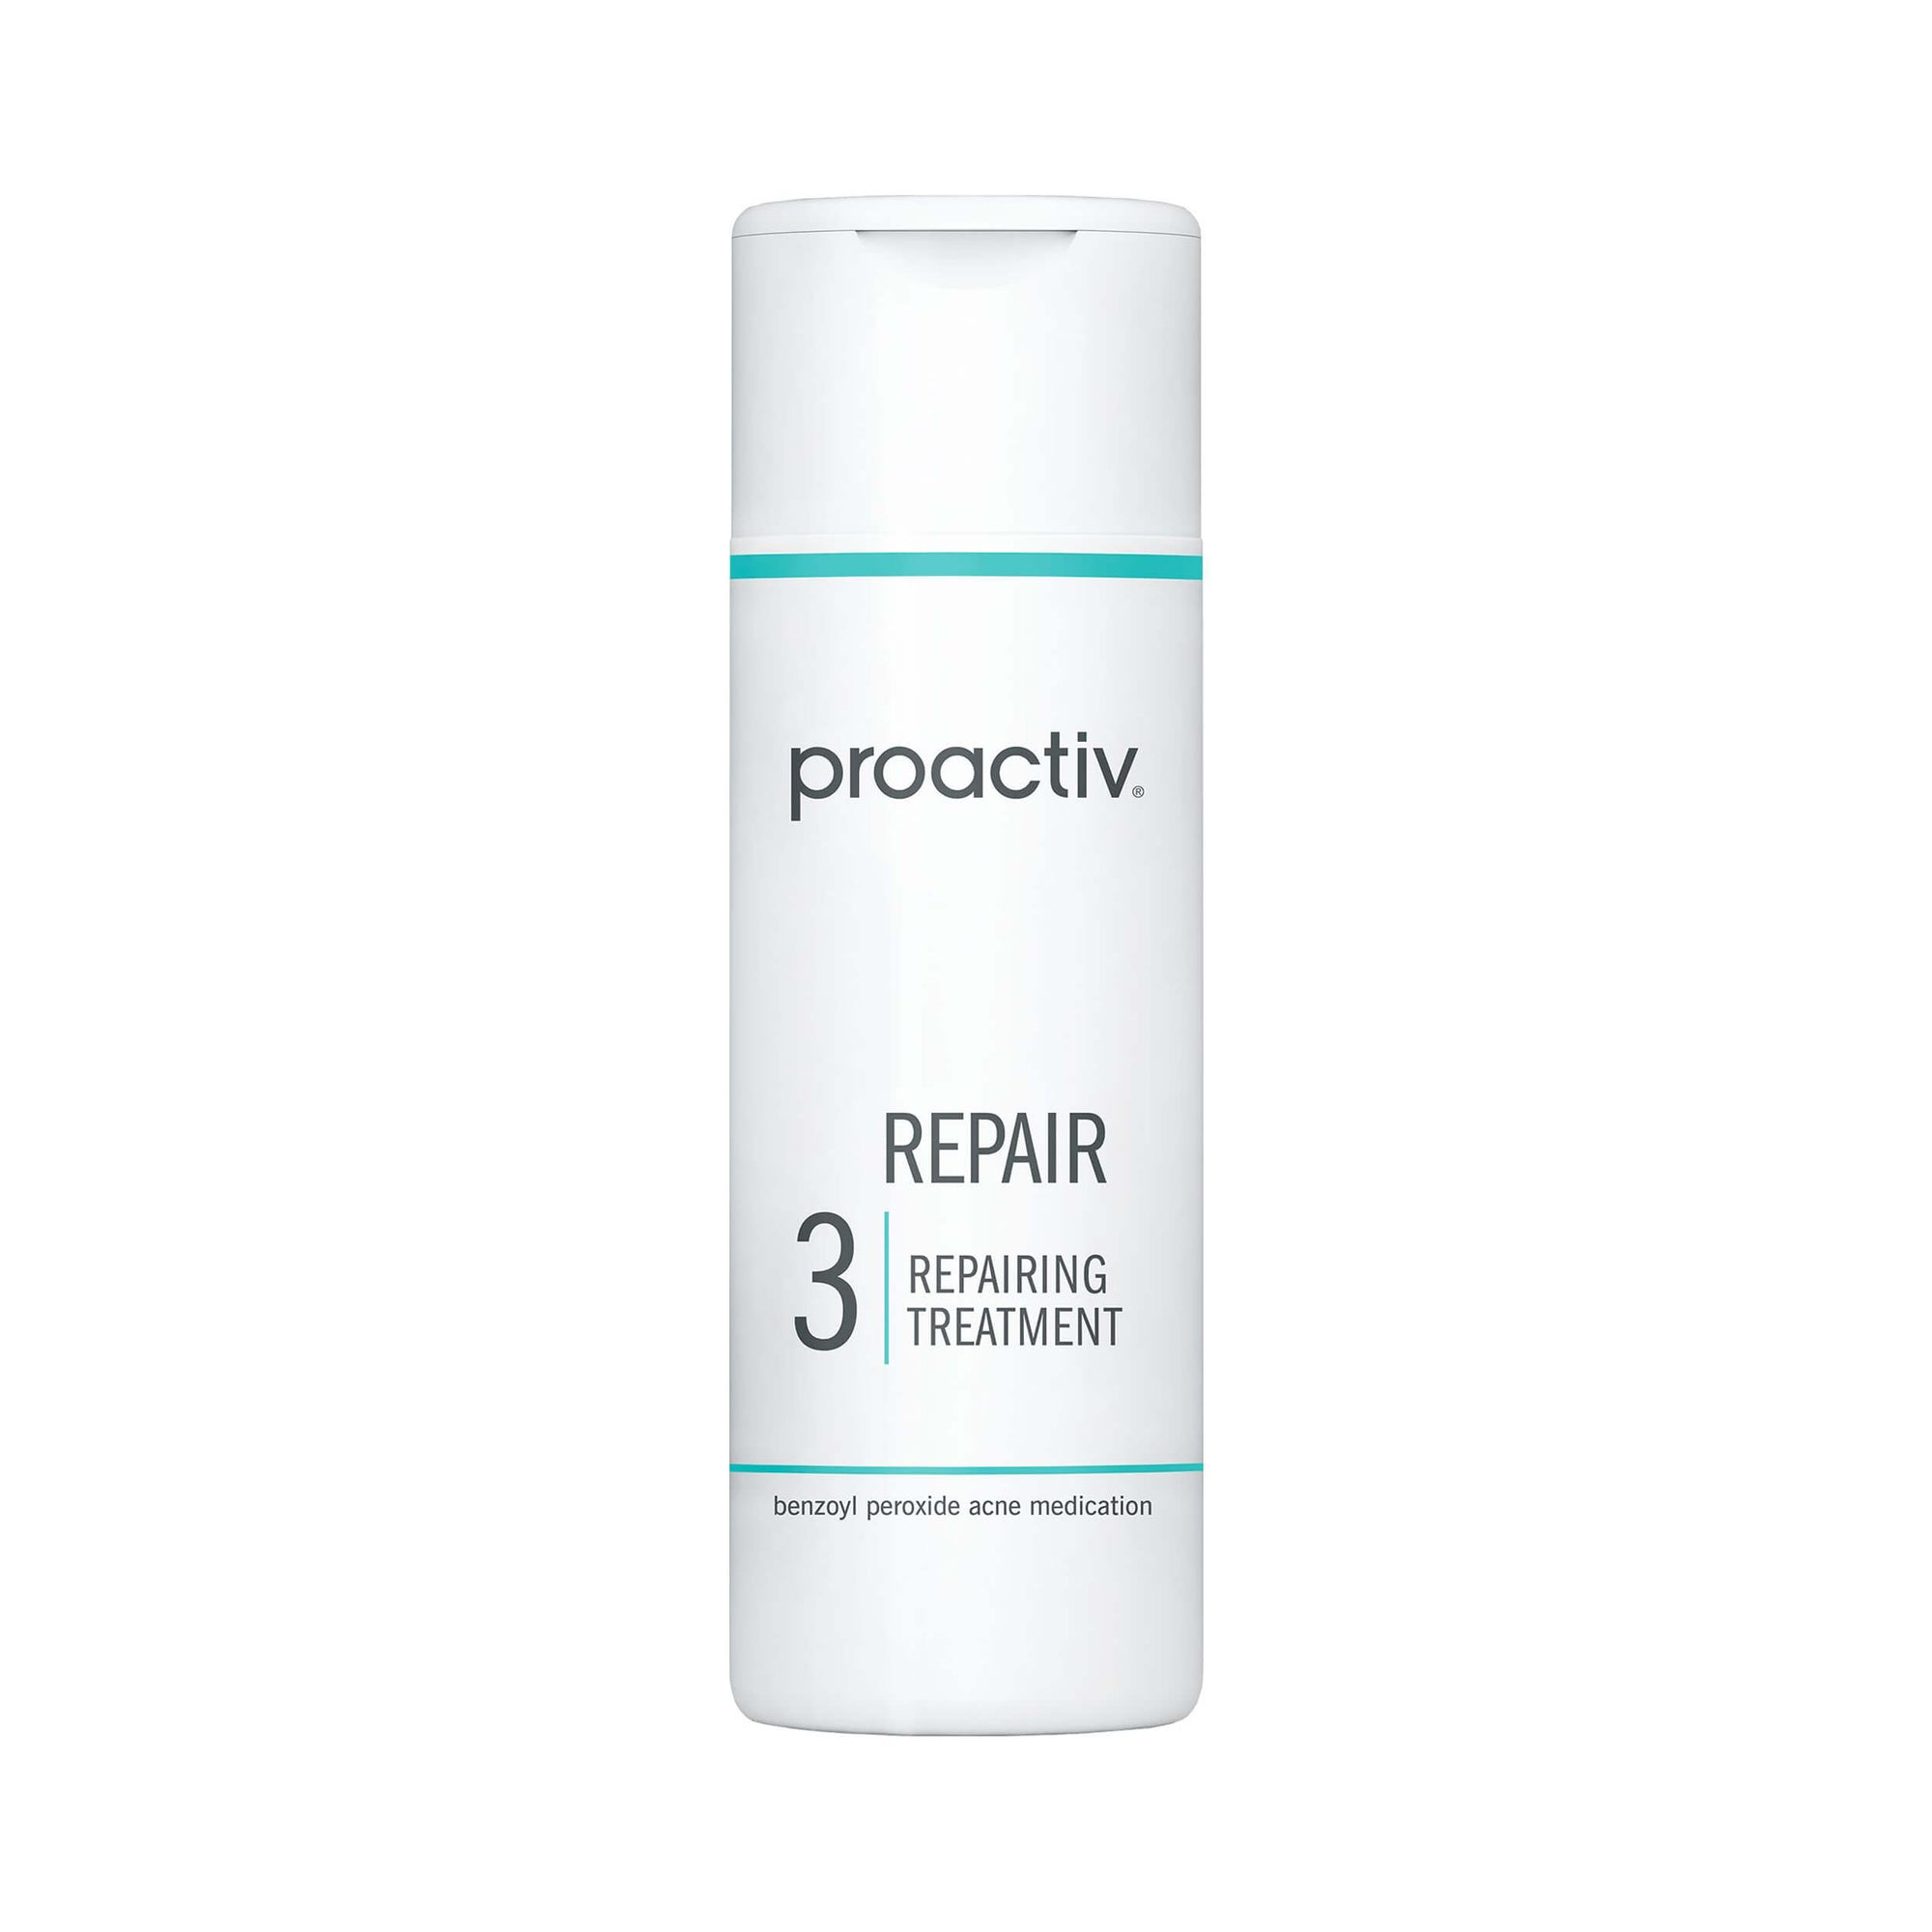 Proactiv Step 3 Repair 89 mL